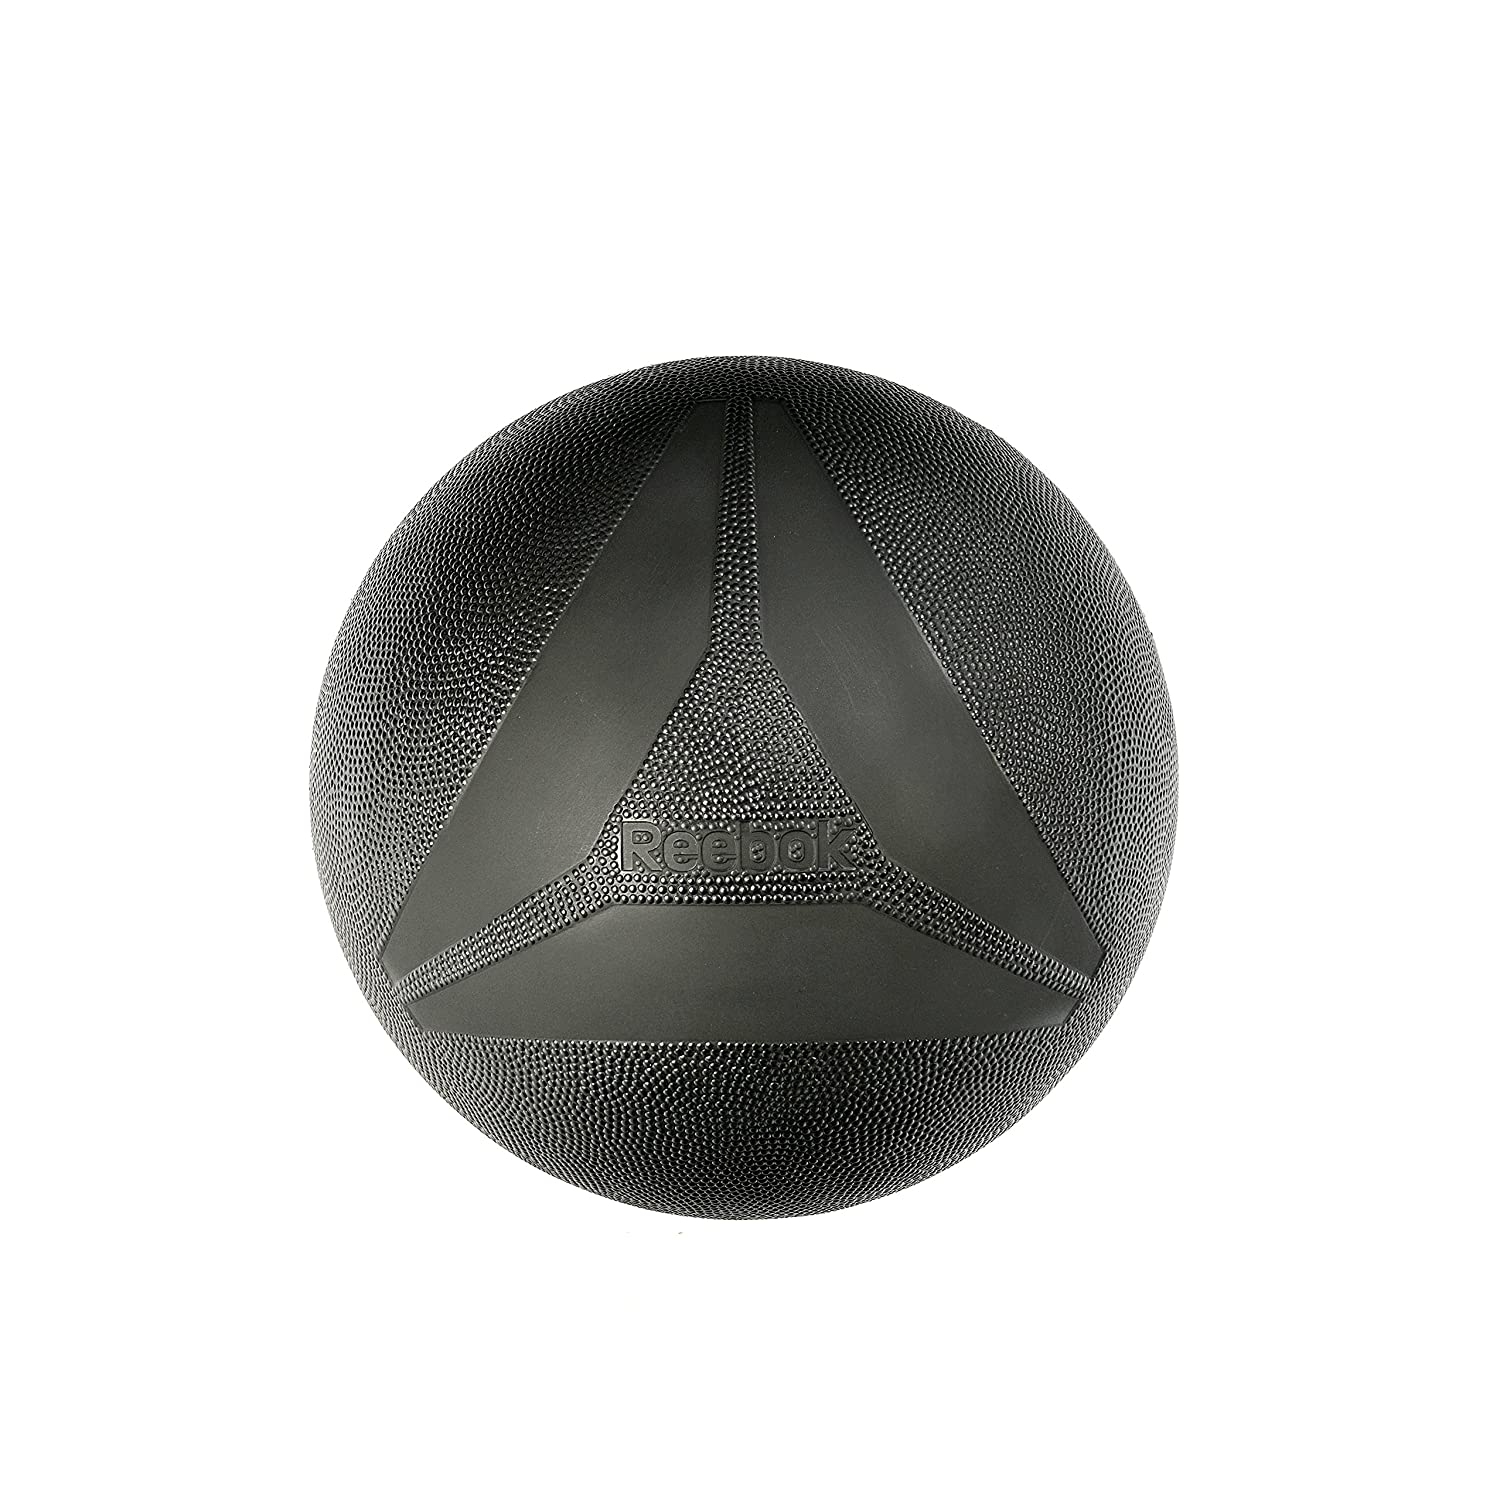 Reebok Slam Ball - 6kg RFE International RSB-10232